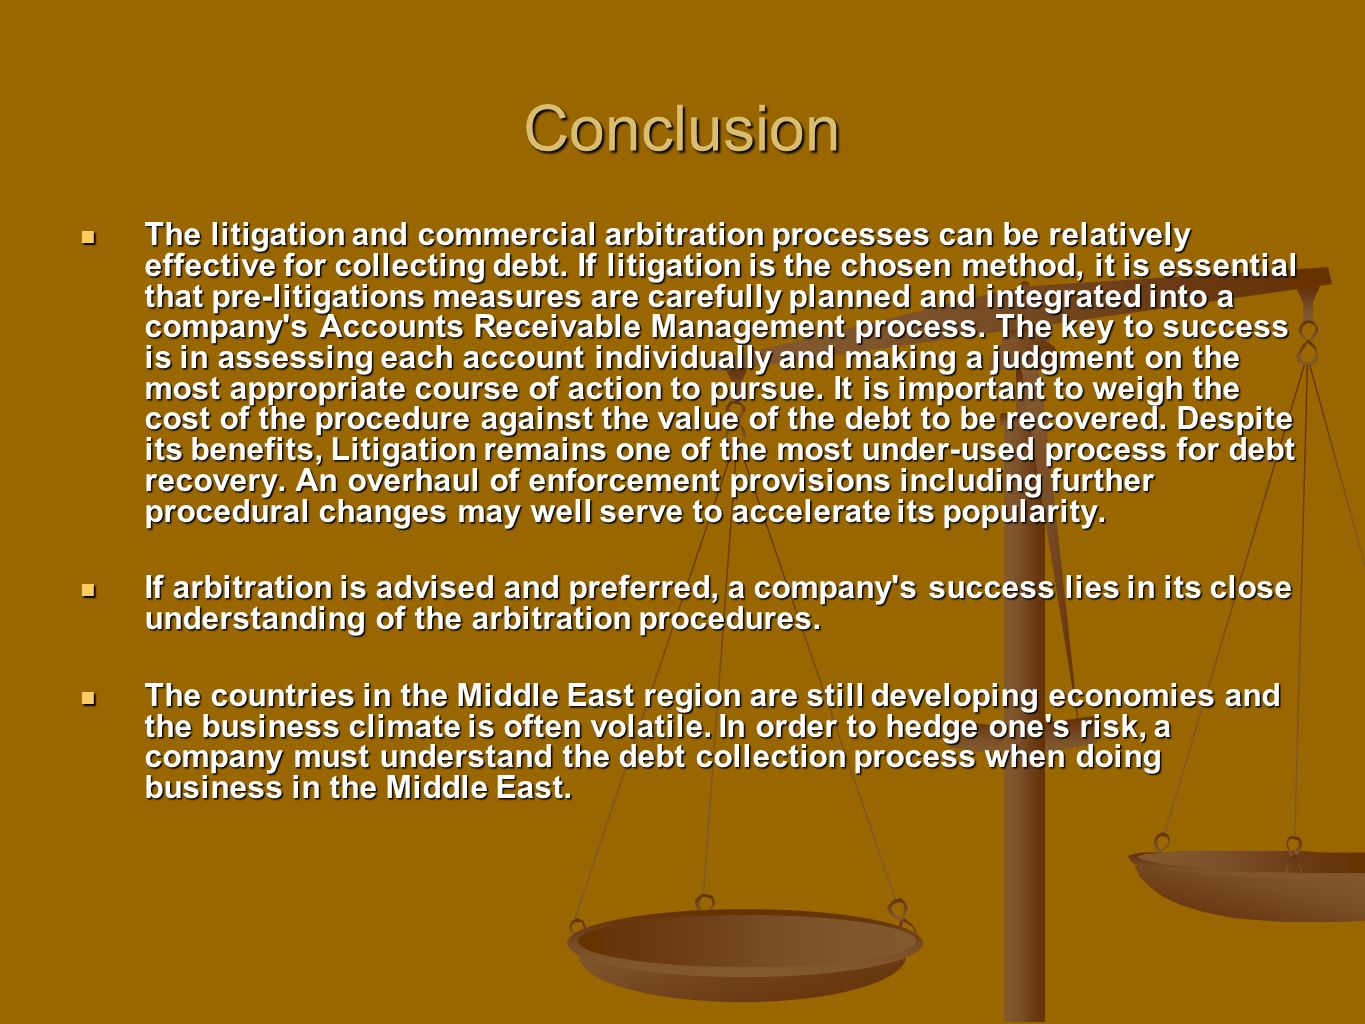 Conclusion The litigation and commercial arbitration processes can be relatively effective for collecting debt. If litigation is the chosen method, it